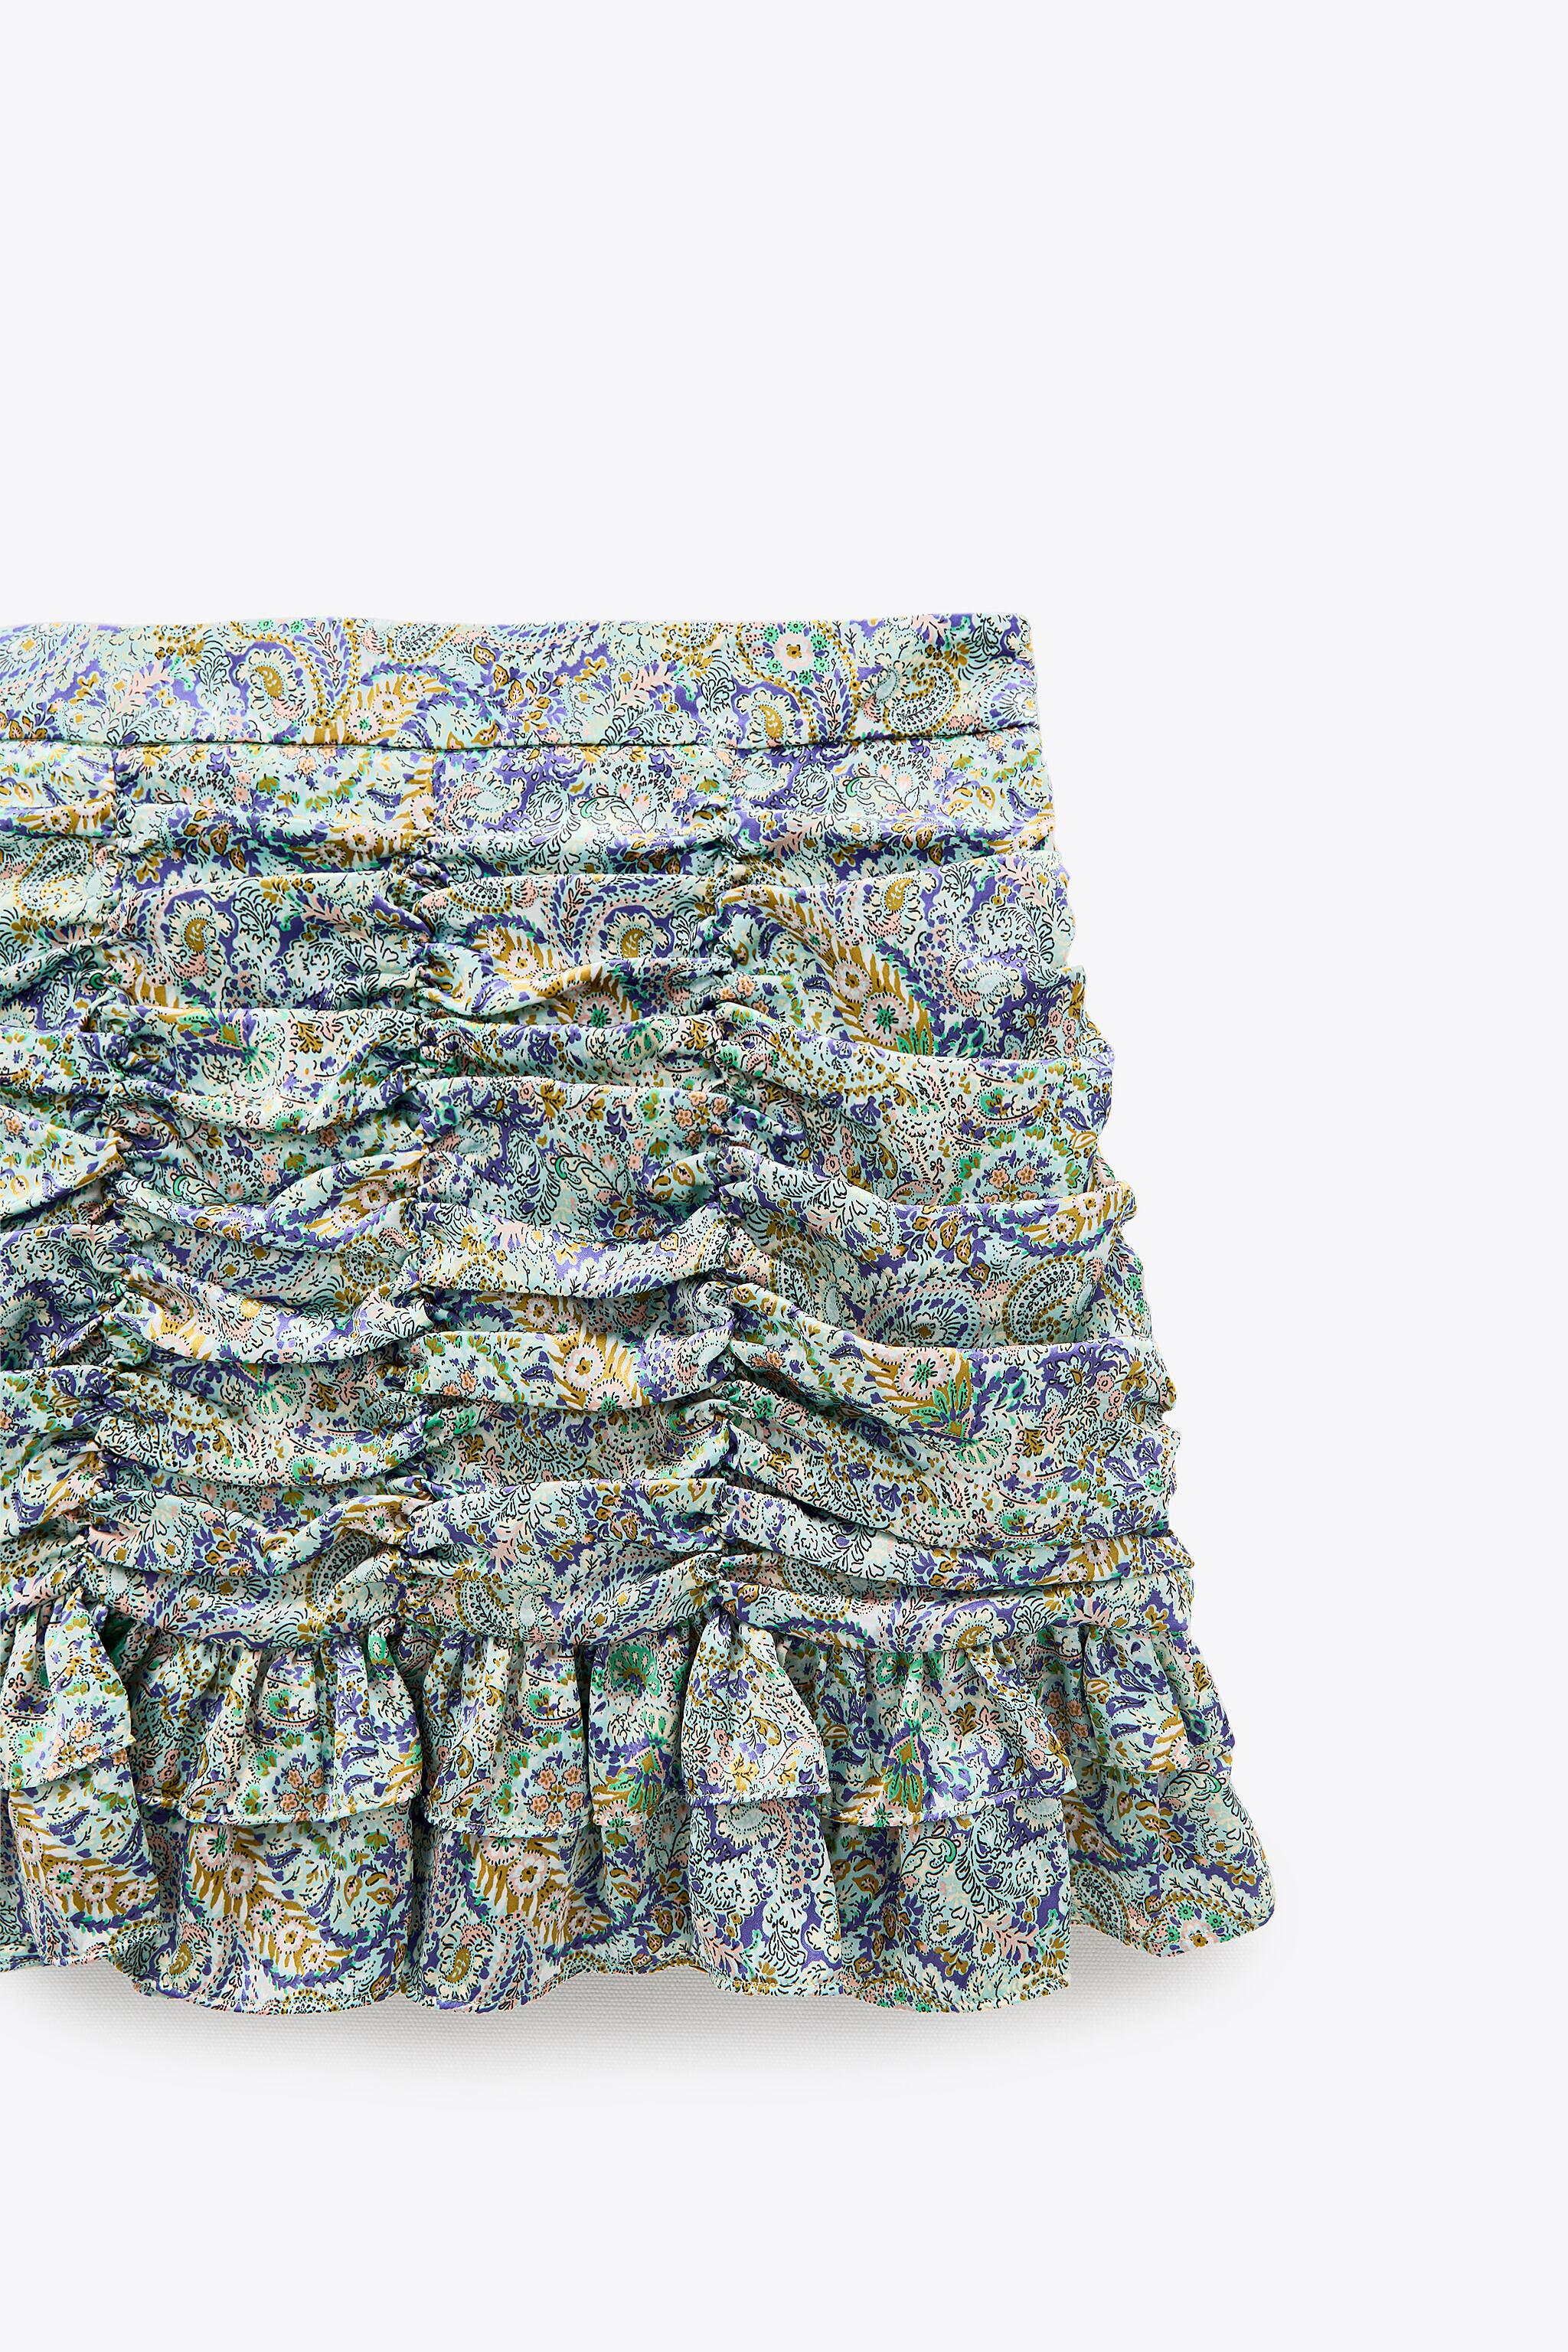 RUCHED PRINTED SKIRT 5